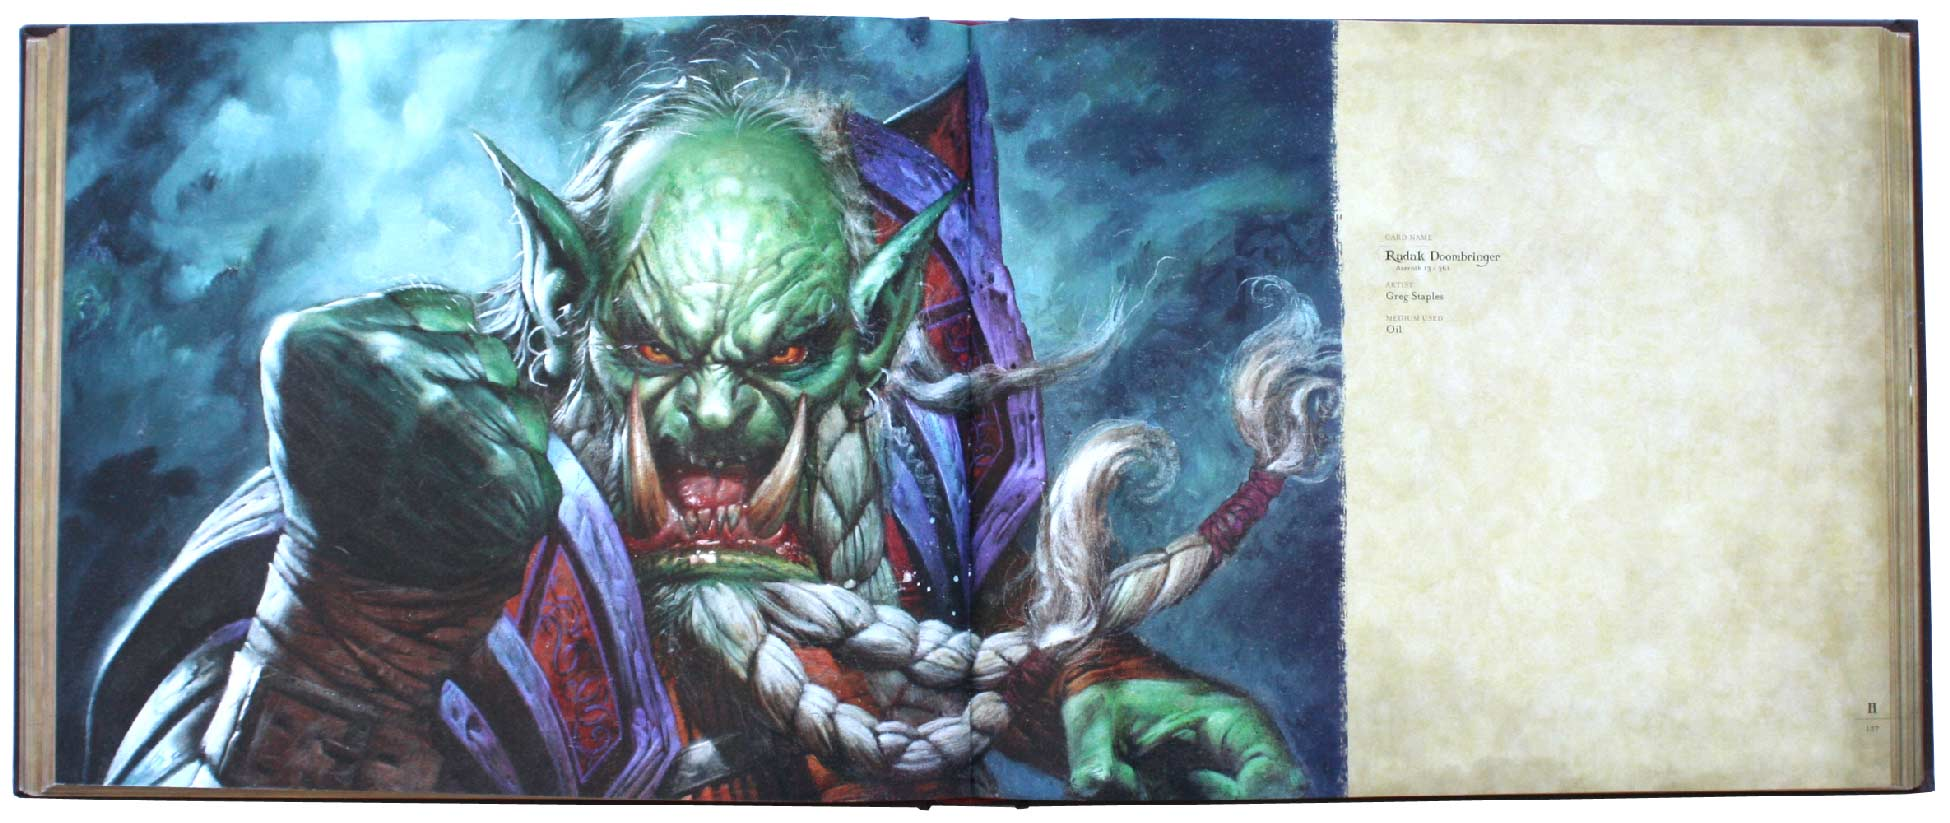 page 126 et 127 de l'art book : The Art of the Trading Card Game (World of Wacraft)